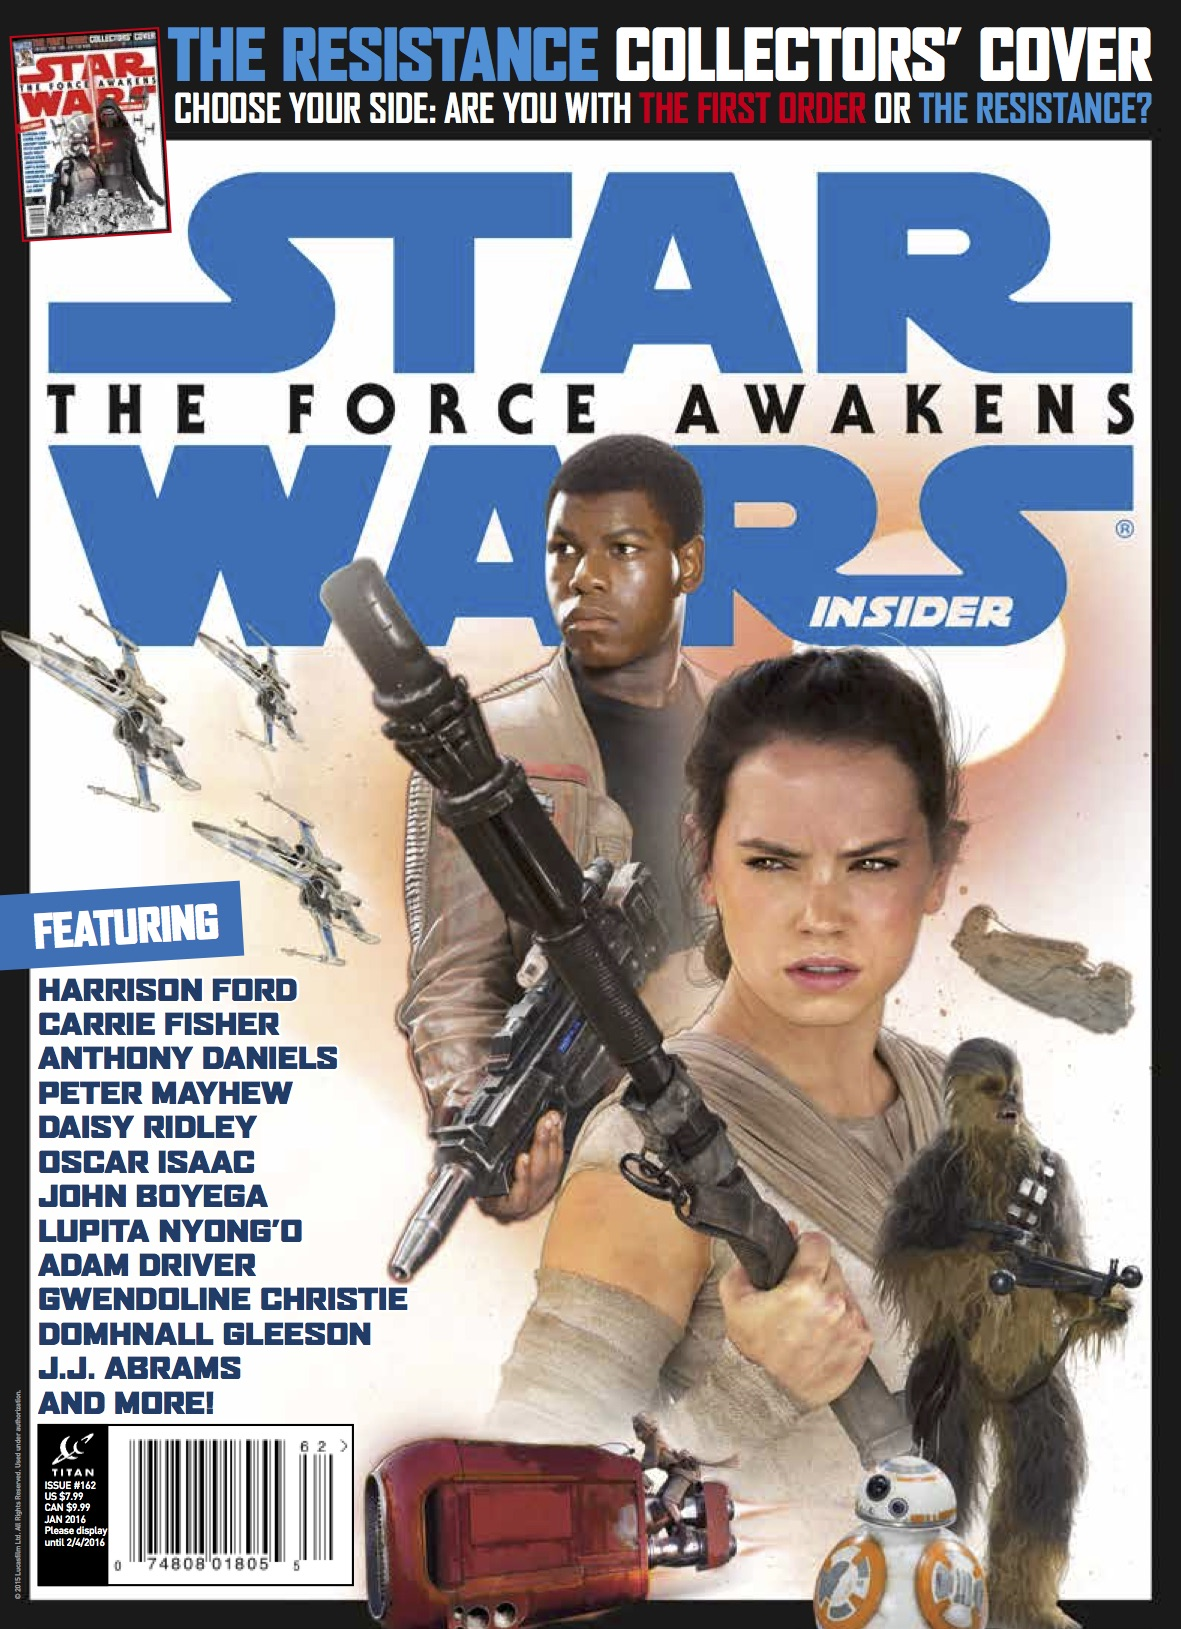 Star Wars Insider Rey and Finn Cover